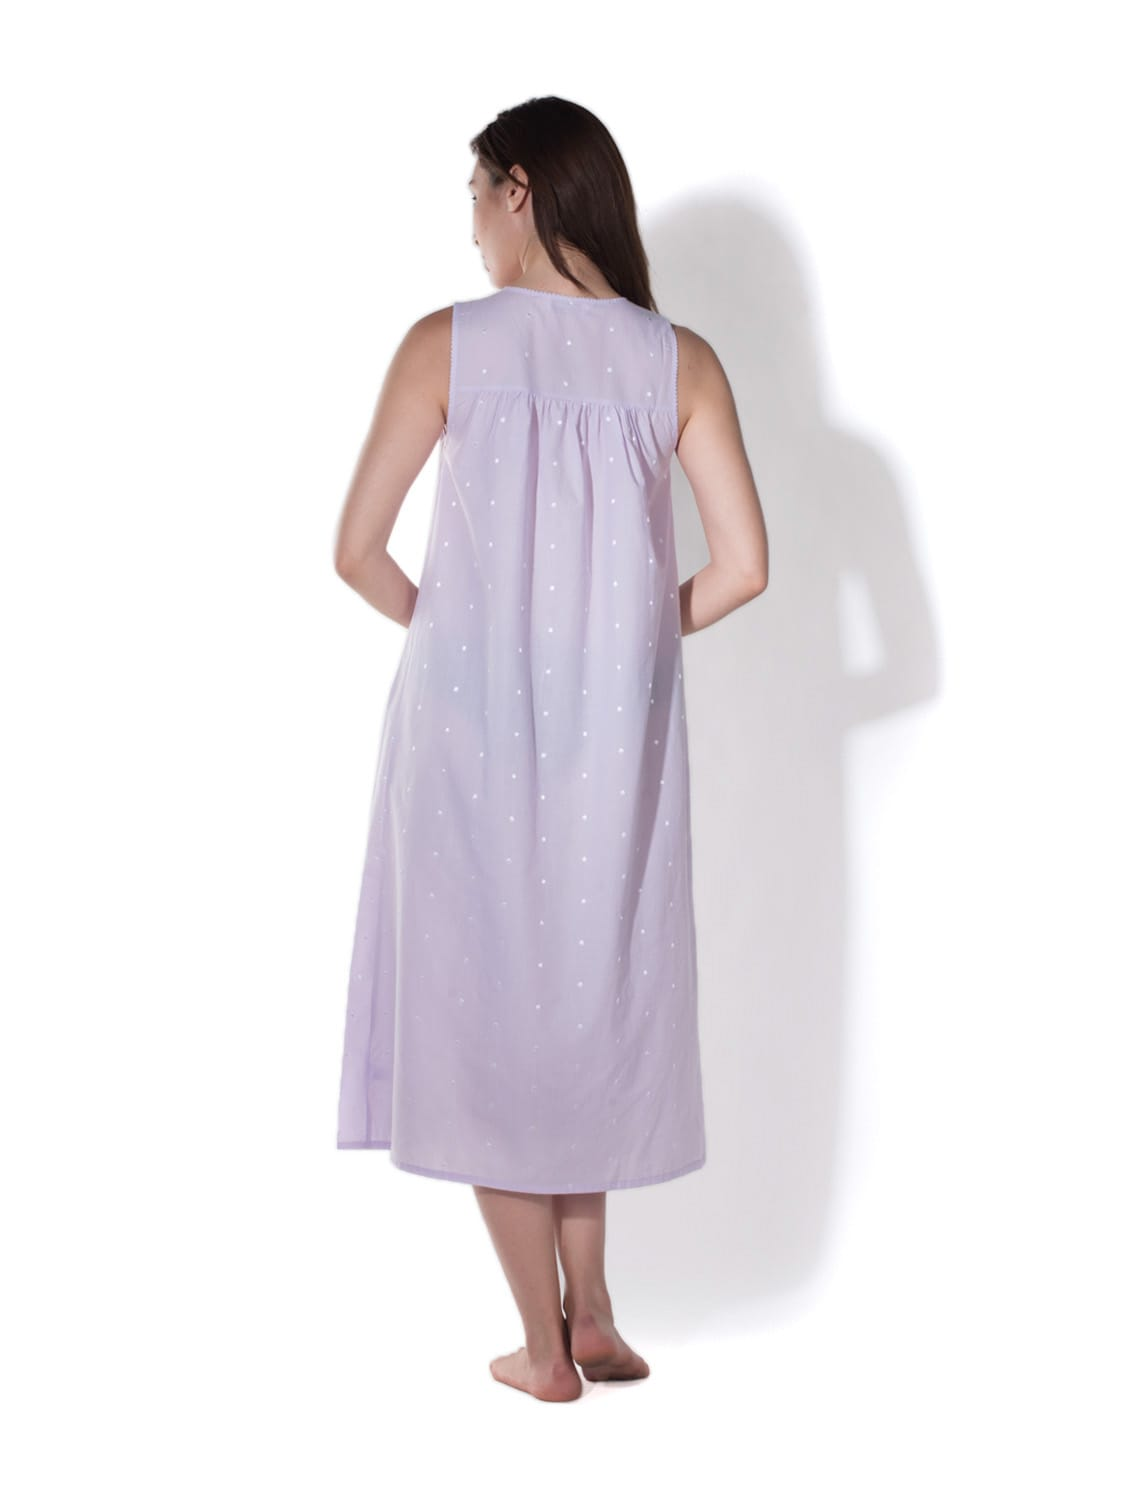 572121ea39a Buy Sleevless Long Nighty for Women from Privatelives for ₹999 at 0% off